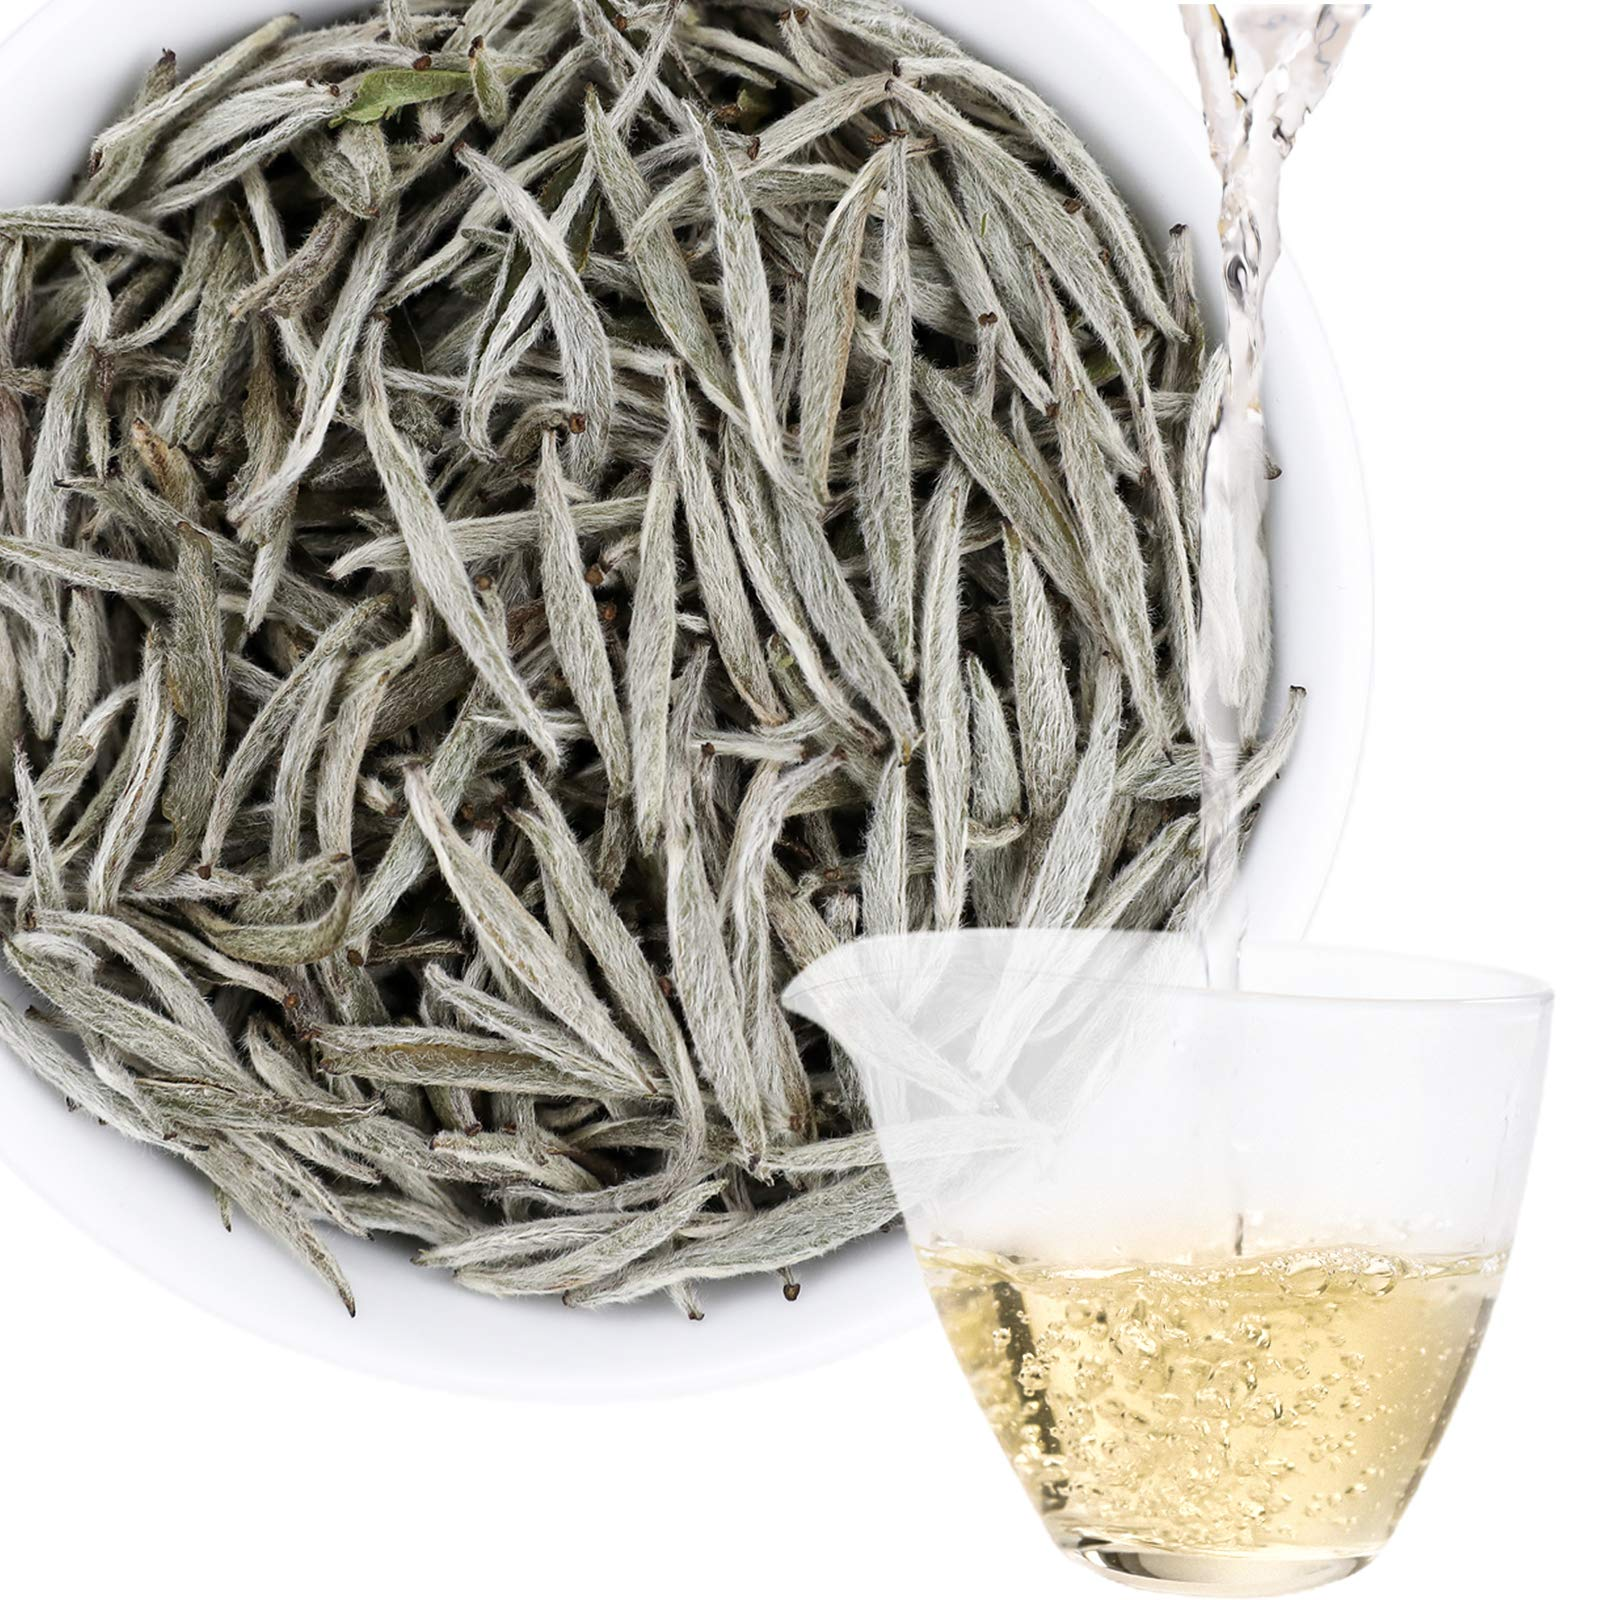 Taimei Teatime Premium Pure White Tea| Loose Leaf Chinese Silver Needle in Tea Tin| Caffeine Level Low Organic Natural Ingredients| Brew Hot or Iced| Rear Healthy Tea Type Rich in Antioxidants| 40+ Cups, 1.76oz